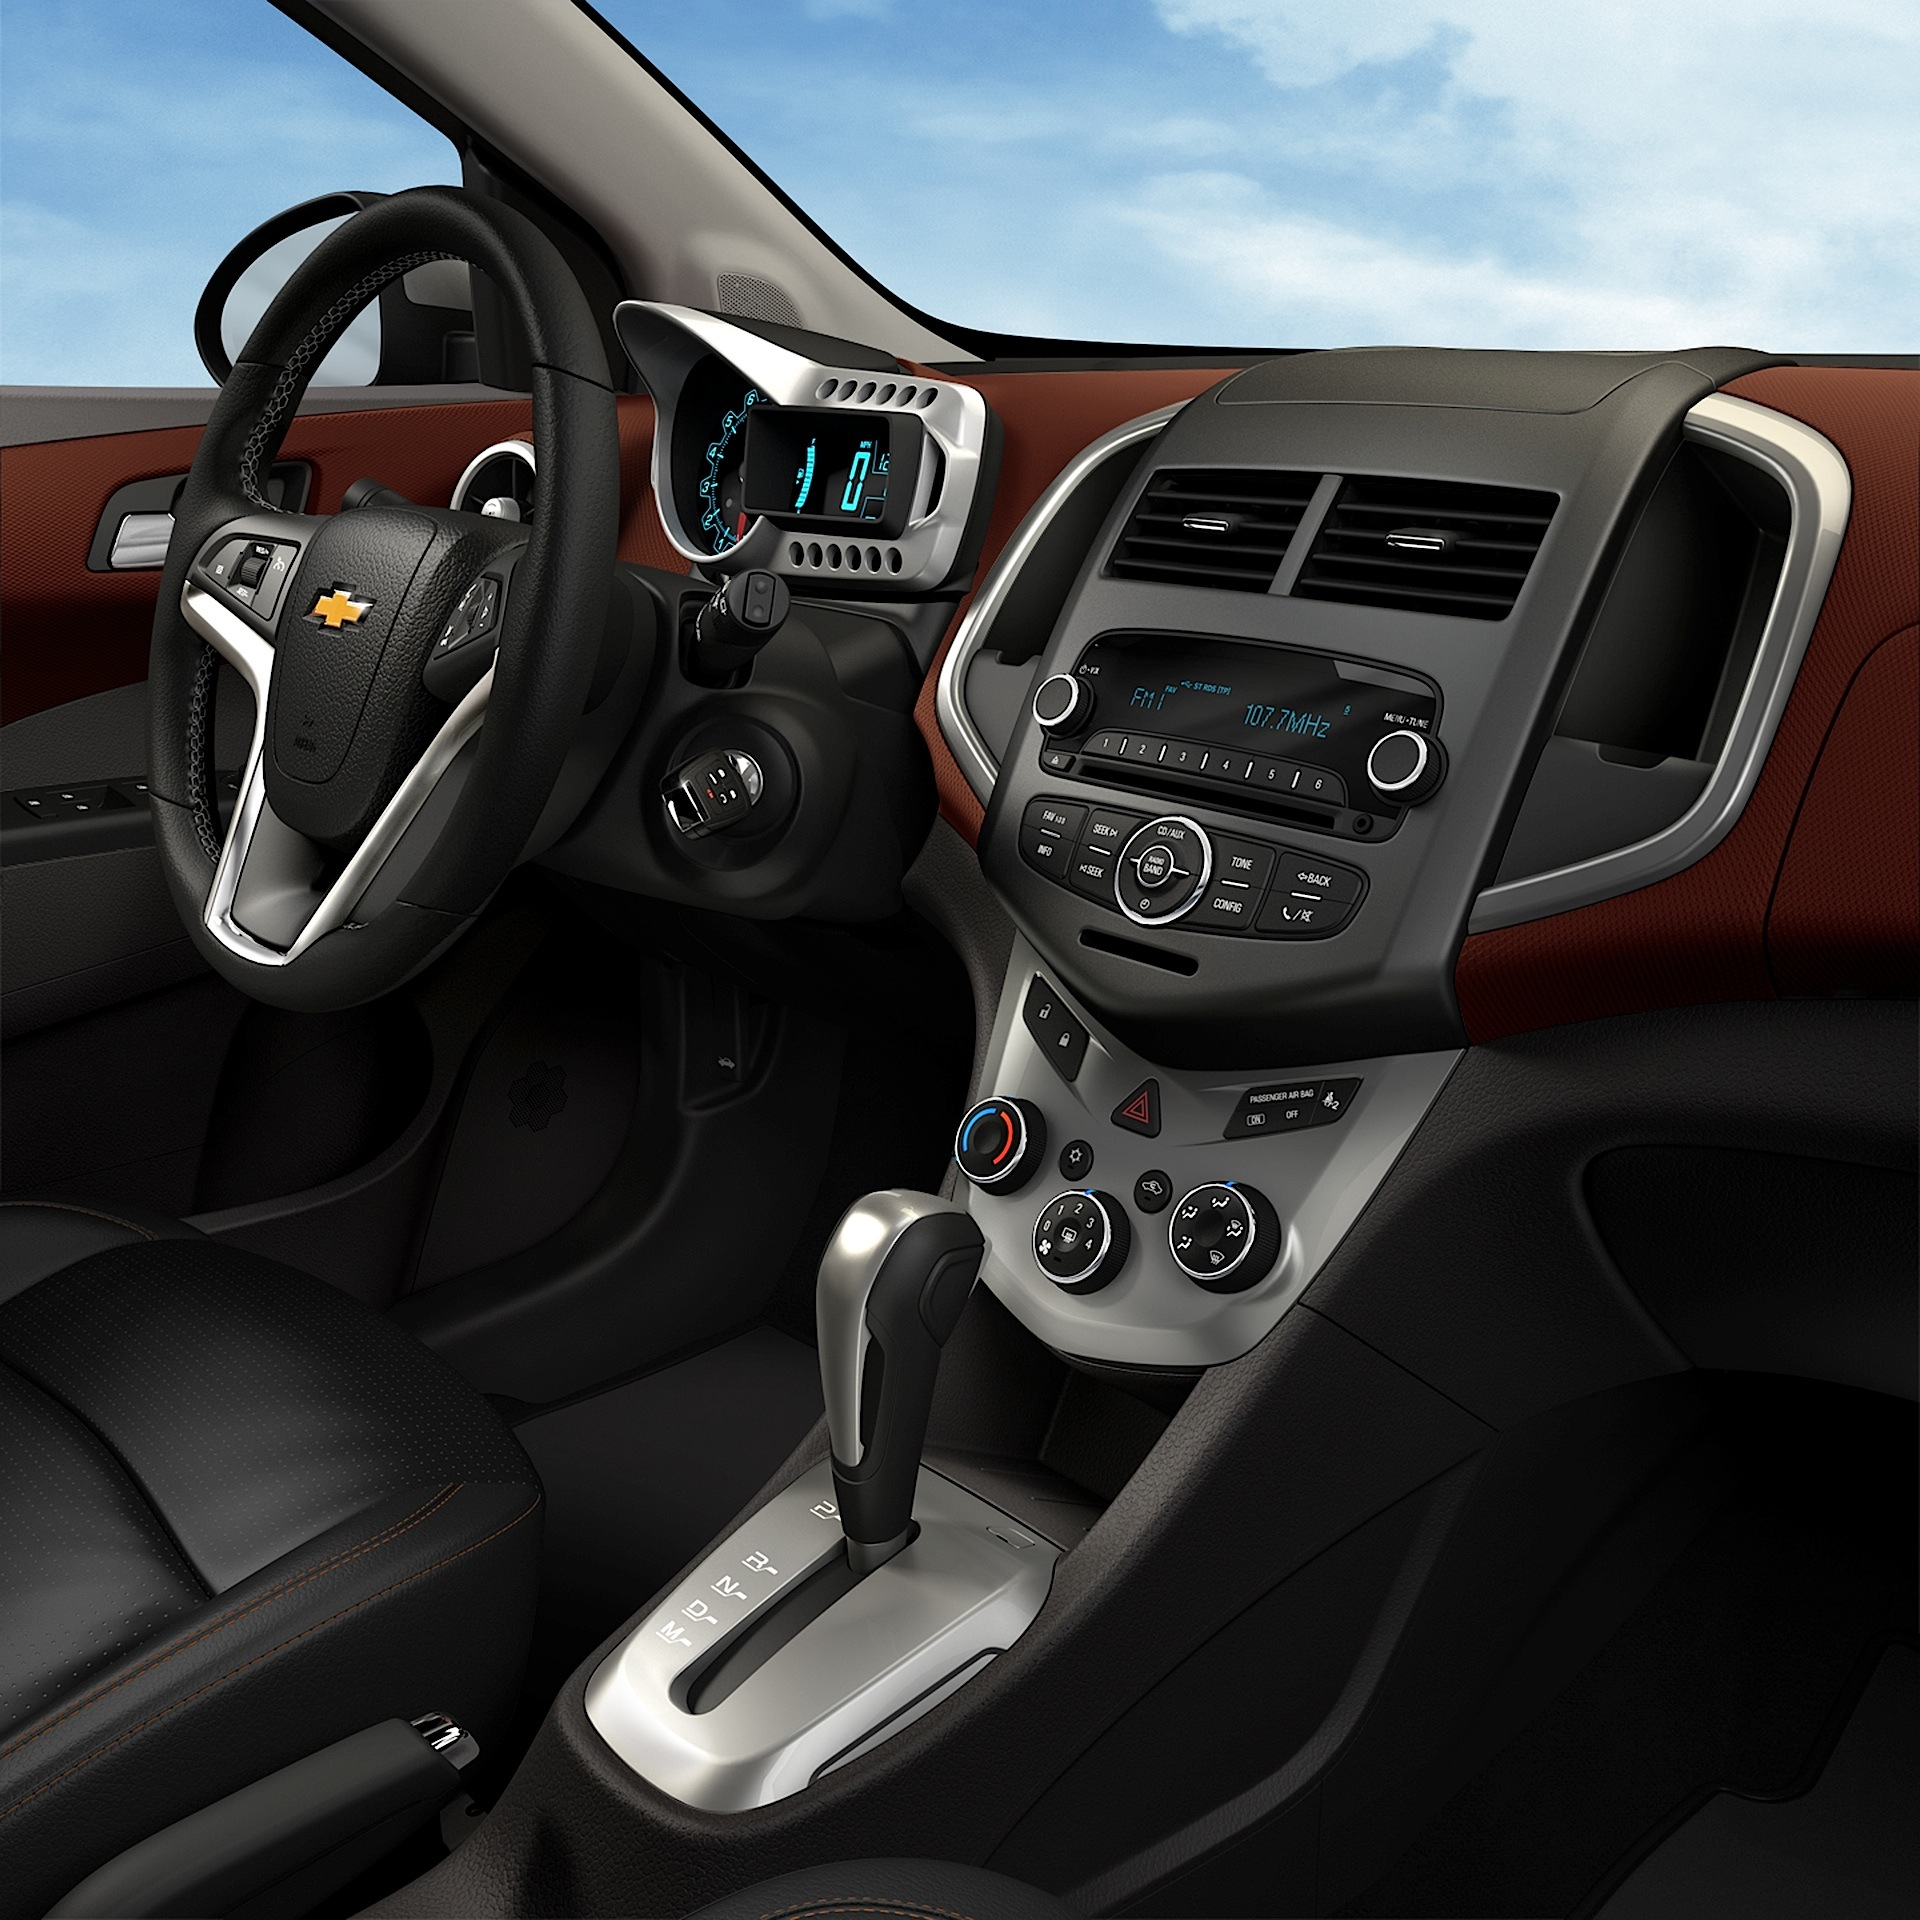 chevrolet sonic hatchback 5 doors specs photos 2011. Black Bedroom Furniture Sets. Home Design Ideas